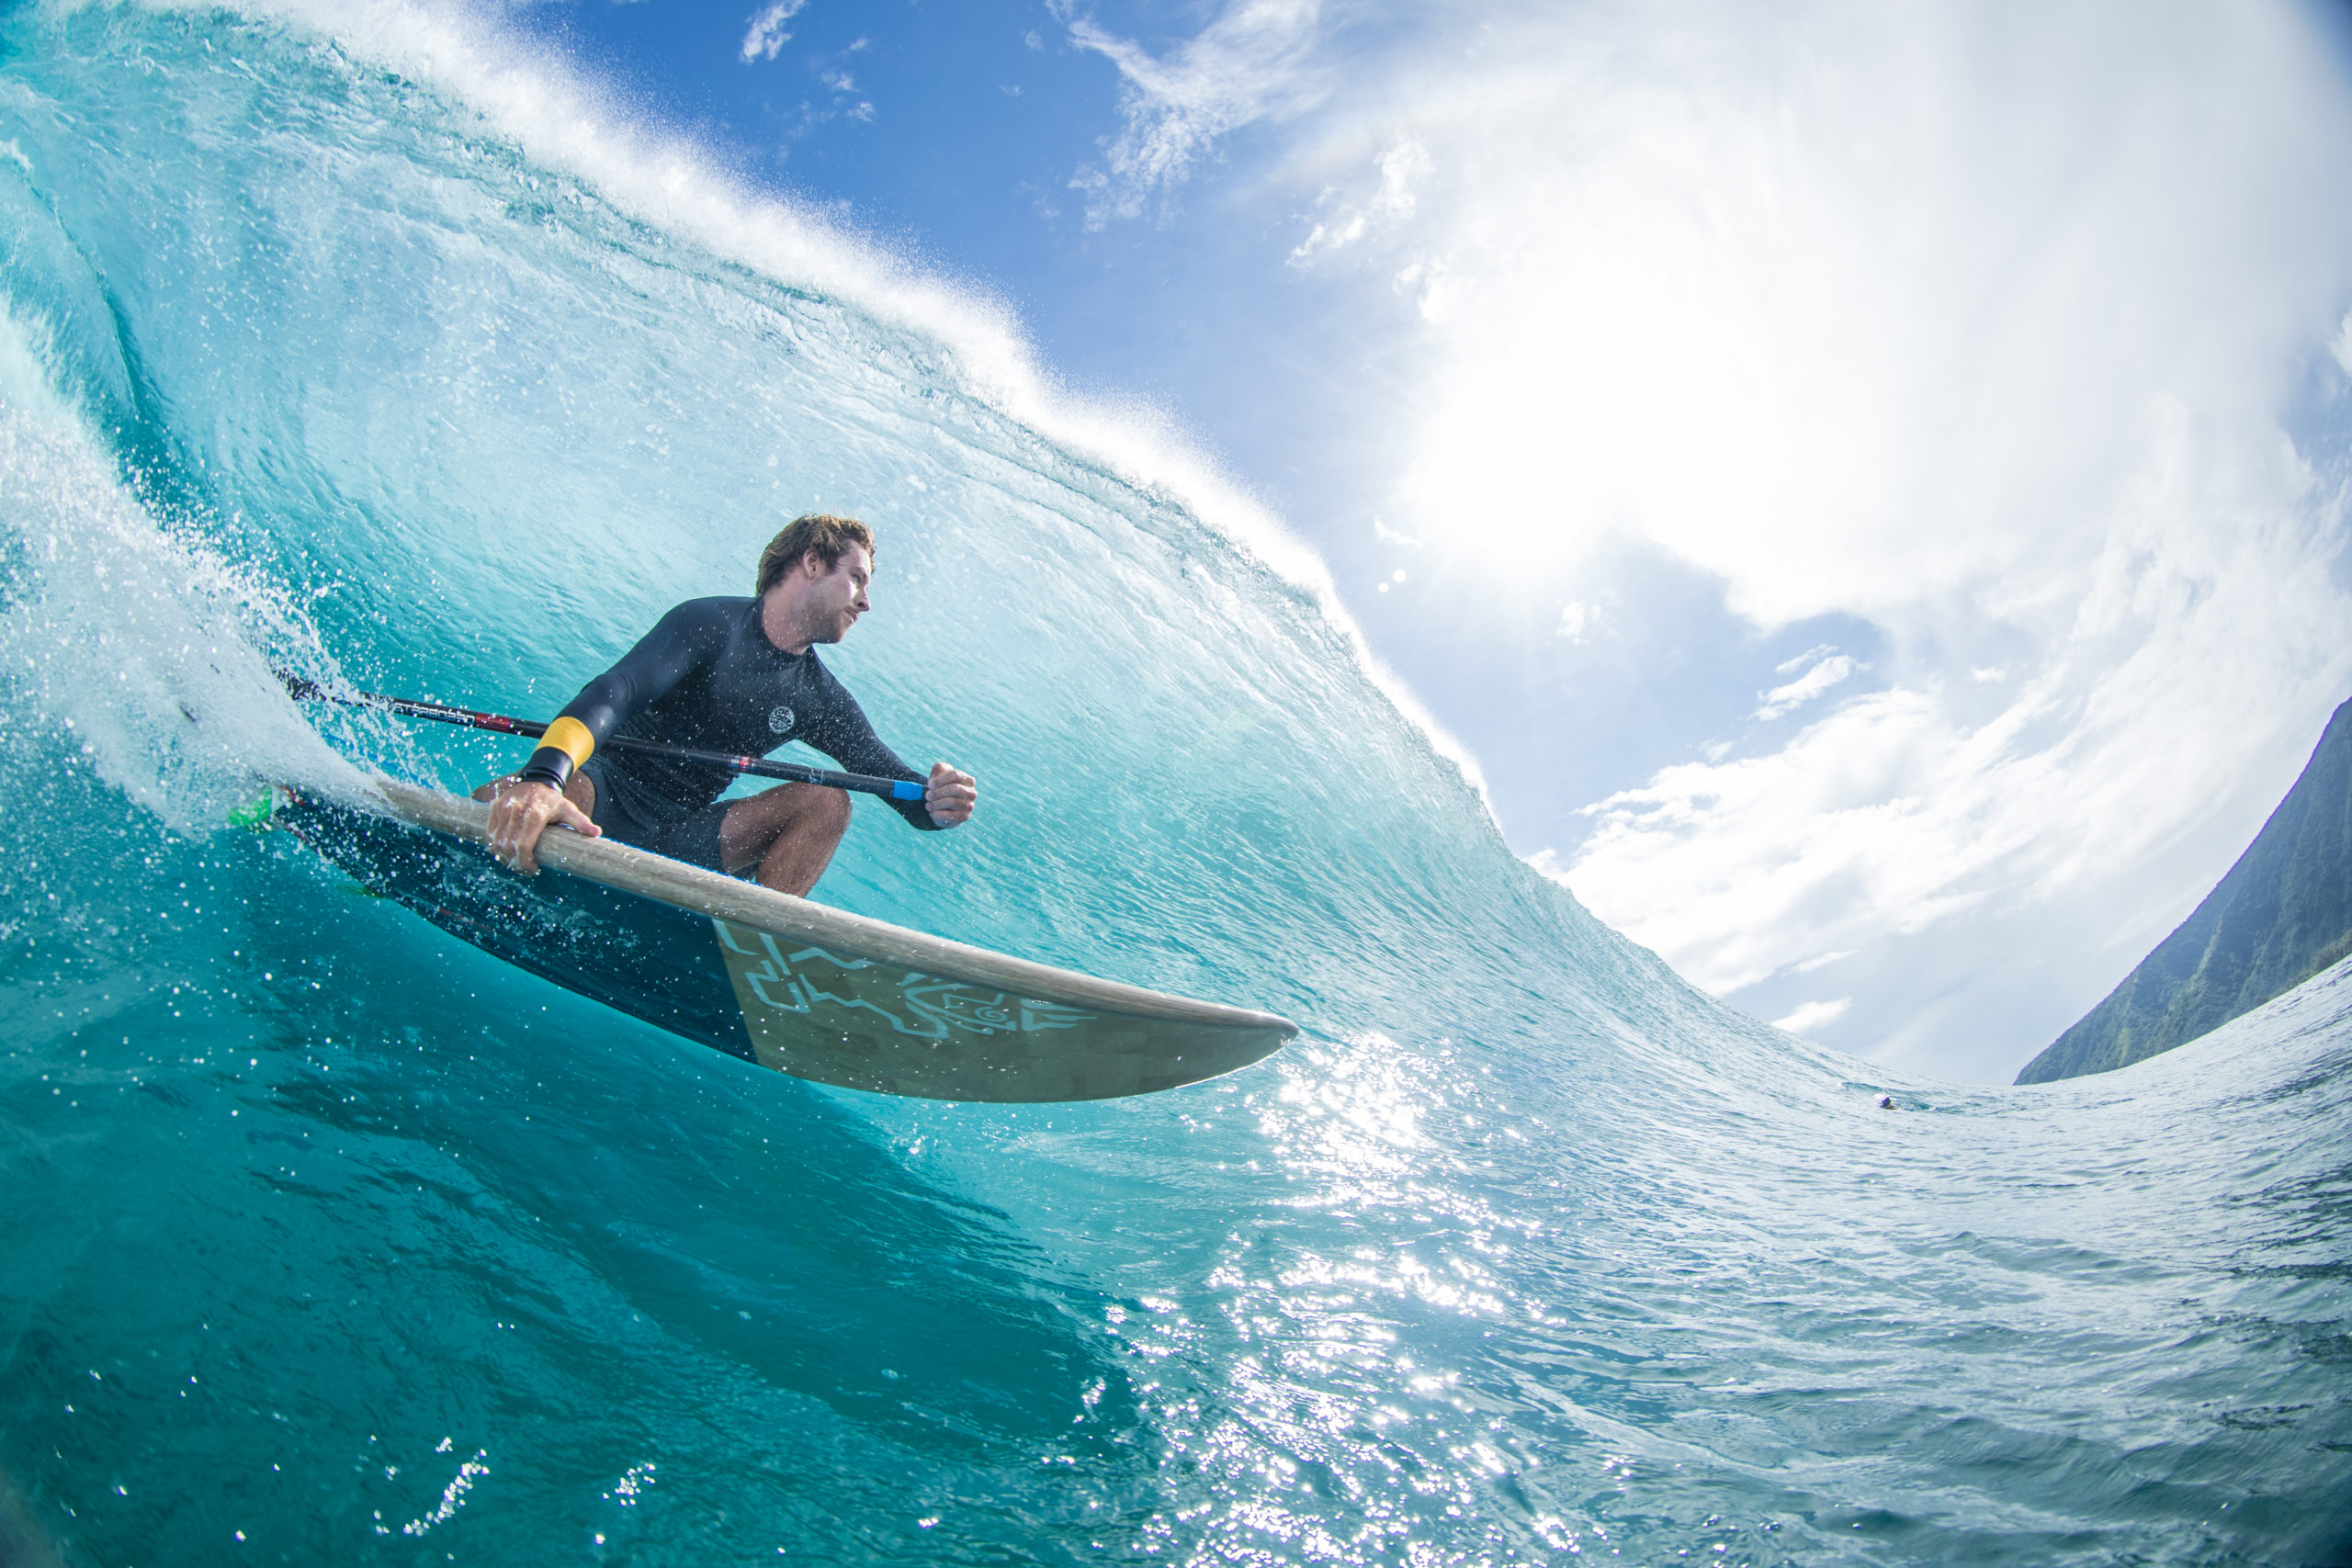 Sygma-sup-school- benoit-Carpentier-sup-surf-camp-supcamp-standuppaddle-stand-up-paddle-book-holiday-portugal-masterclass-worldchampion (7)